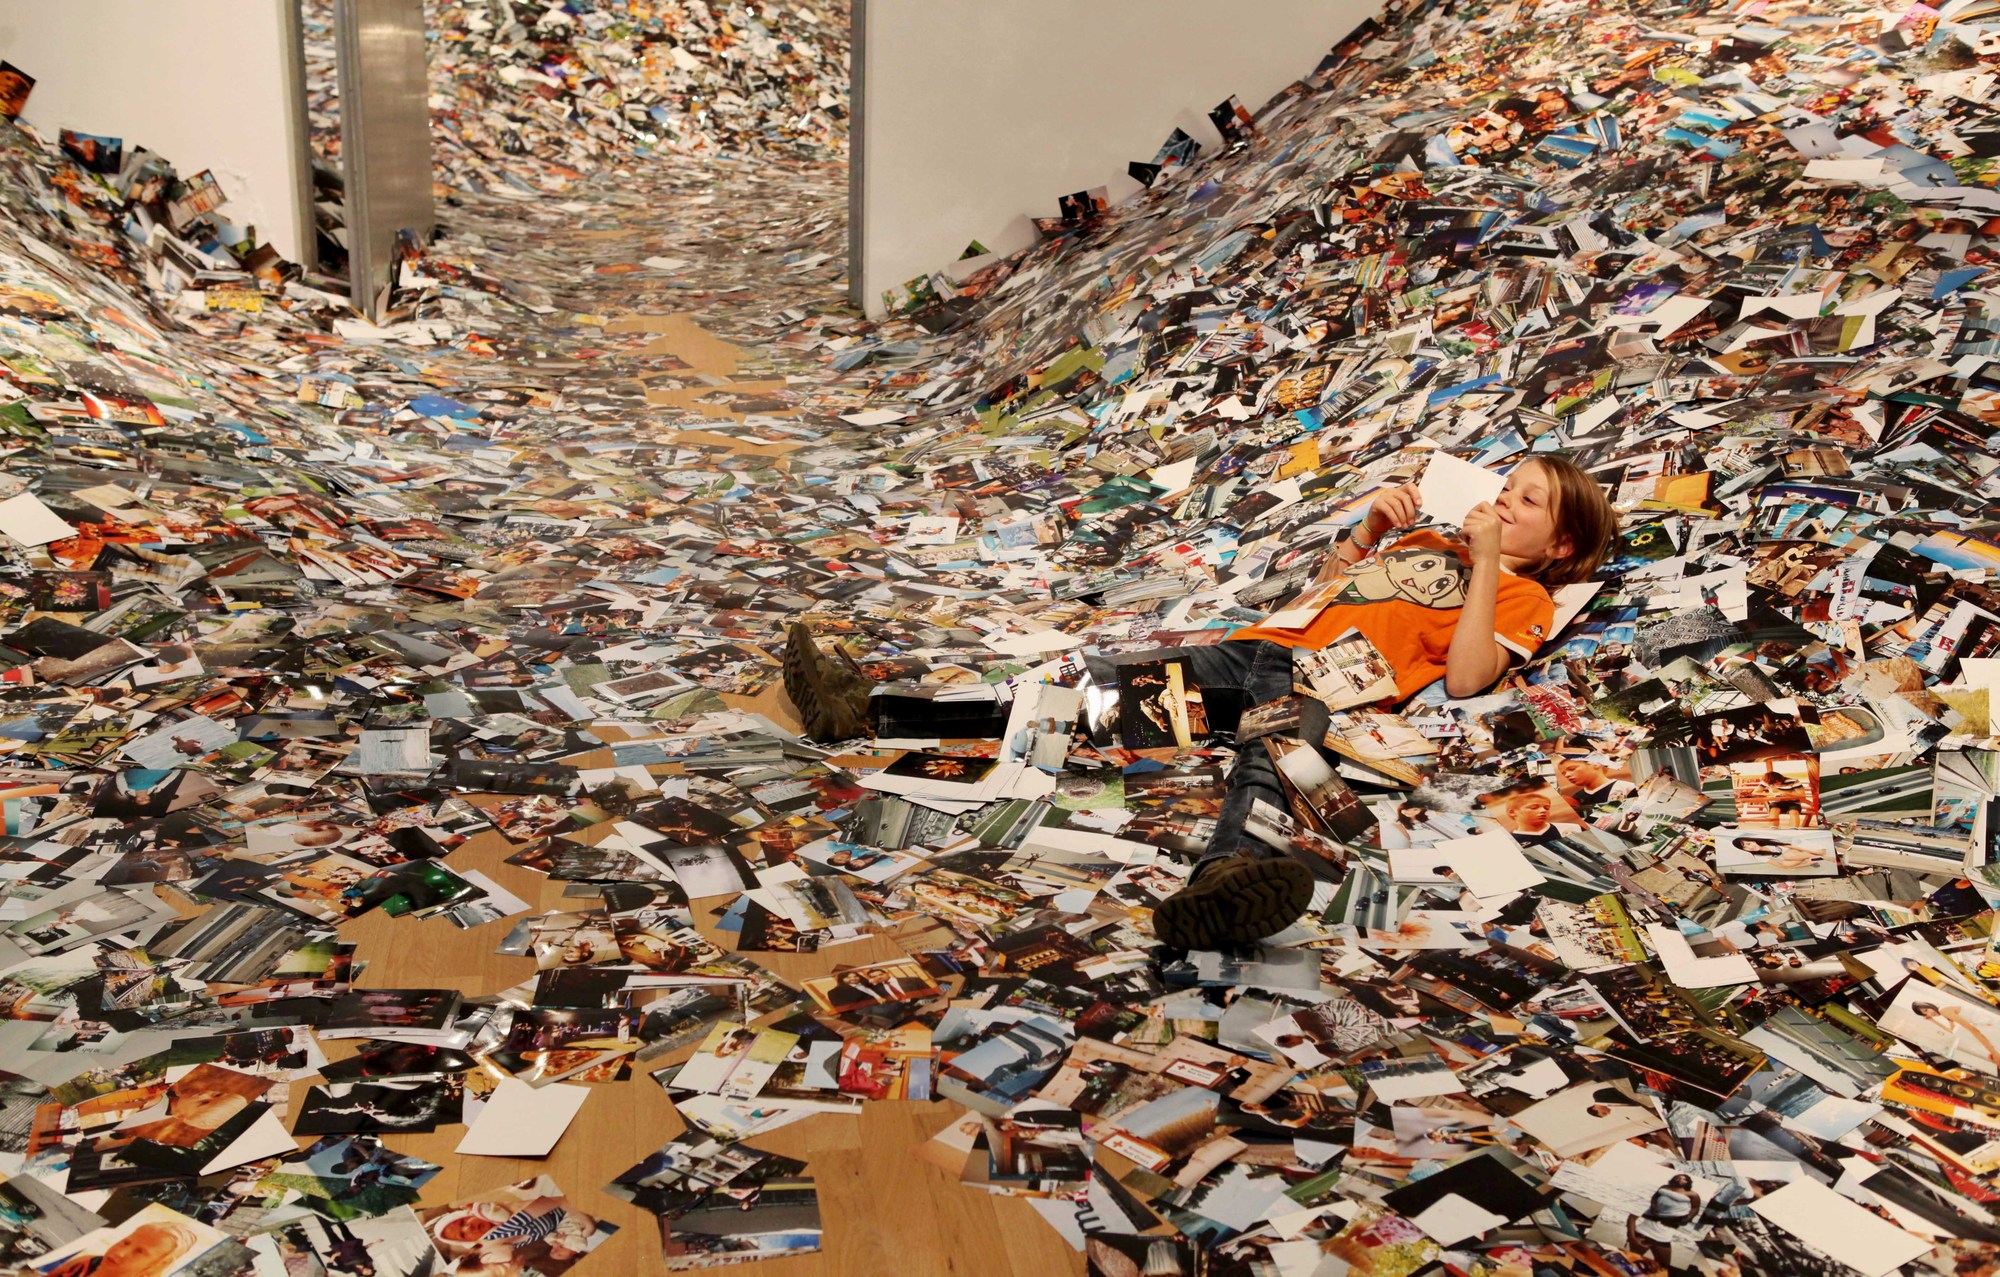 24hrs of Photos by Erik Kessels, Foam, Amsterdam, 2011